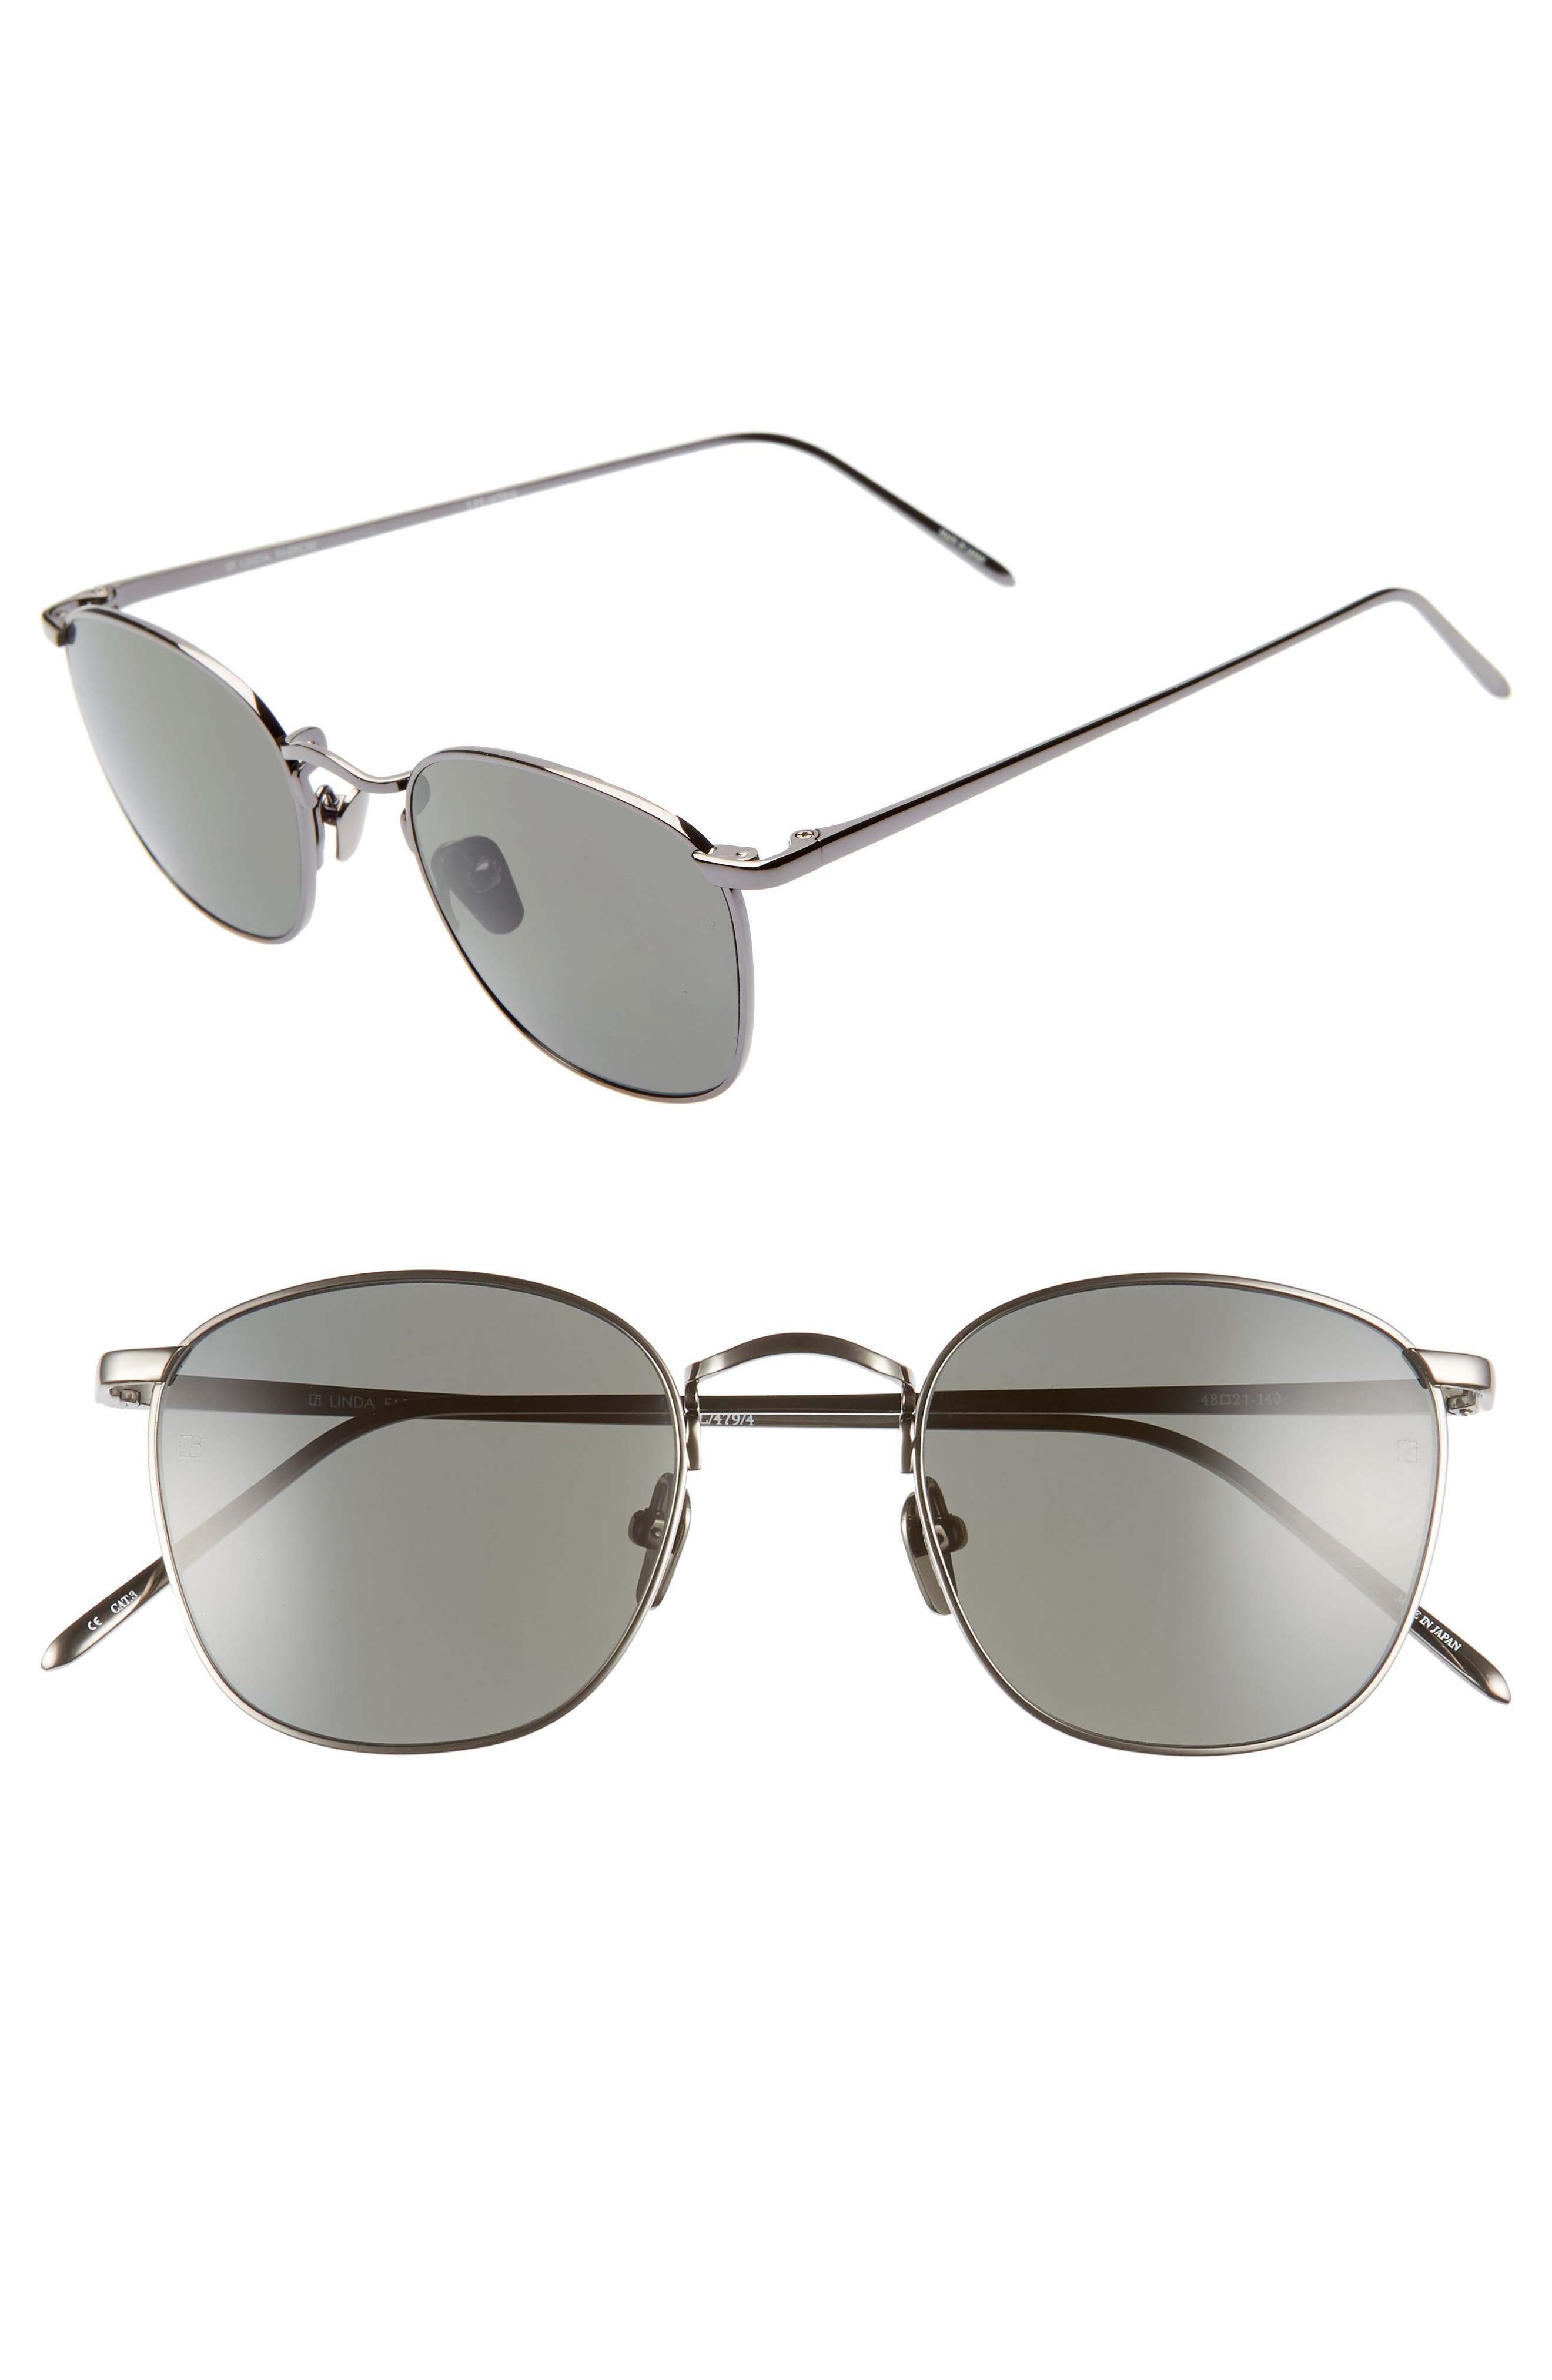 48mm Square Sunglasses,                             Main thumbnail 1, color,                             DARK NICKEL